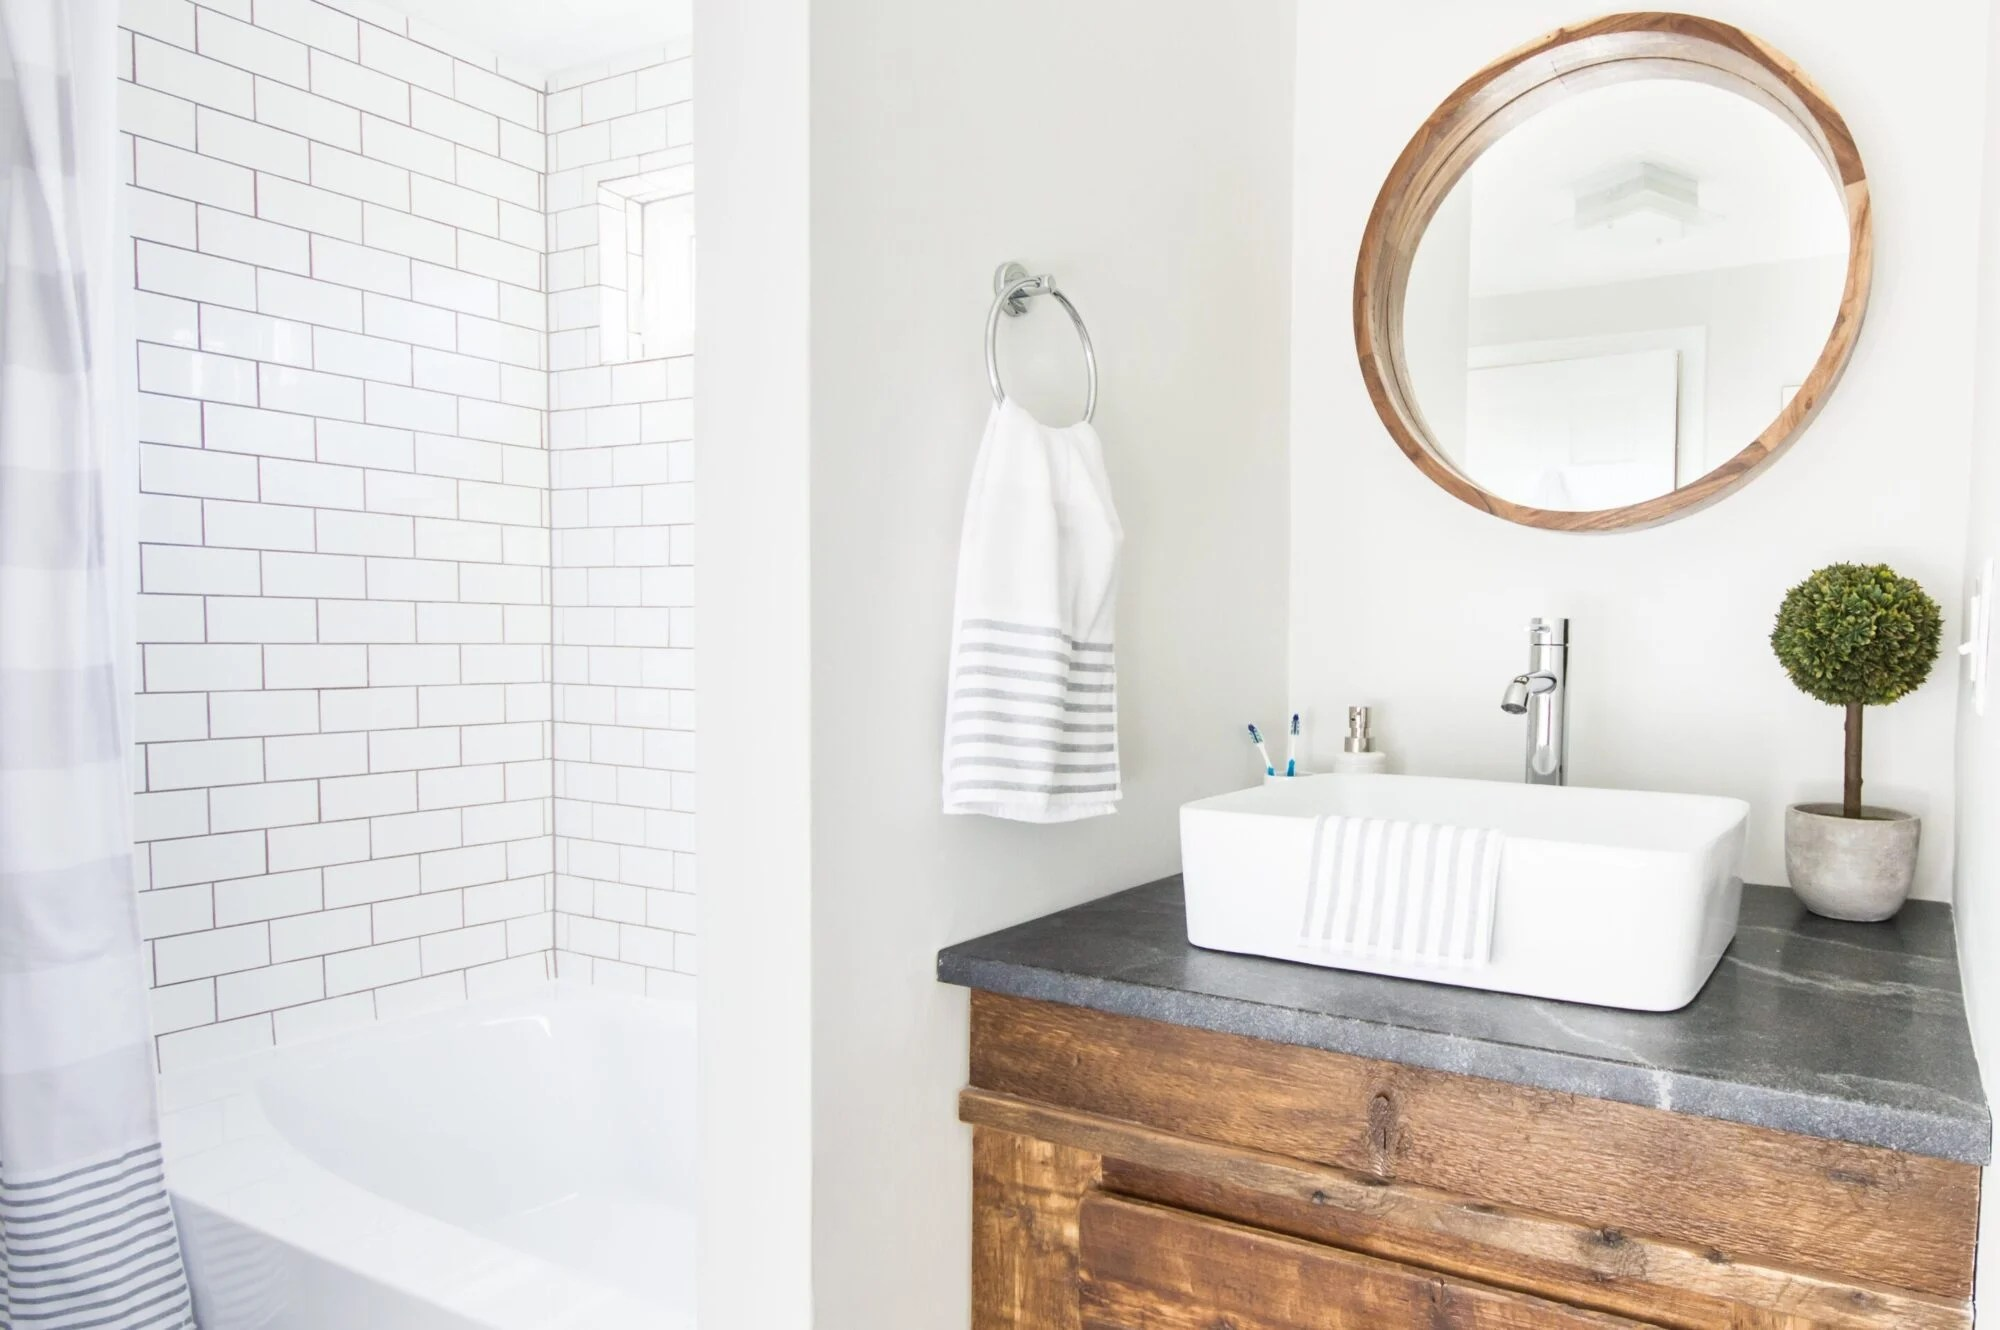 Updated farmhouse bathroom with white subway tiles near bathtub and a rustic sink set in custom wood vanity